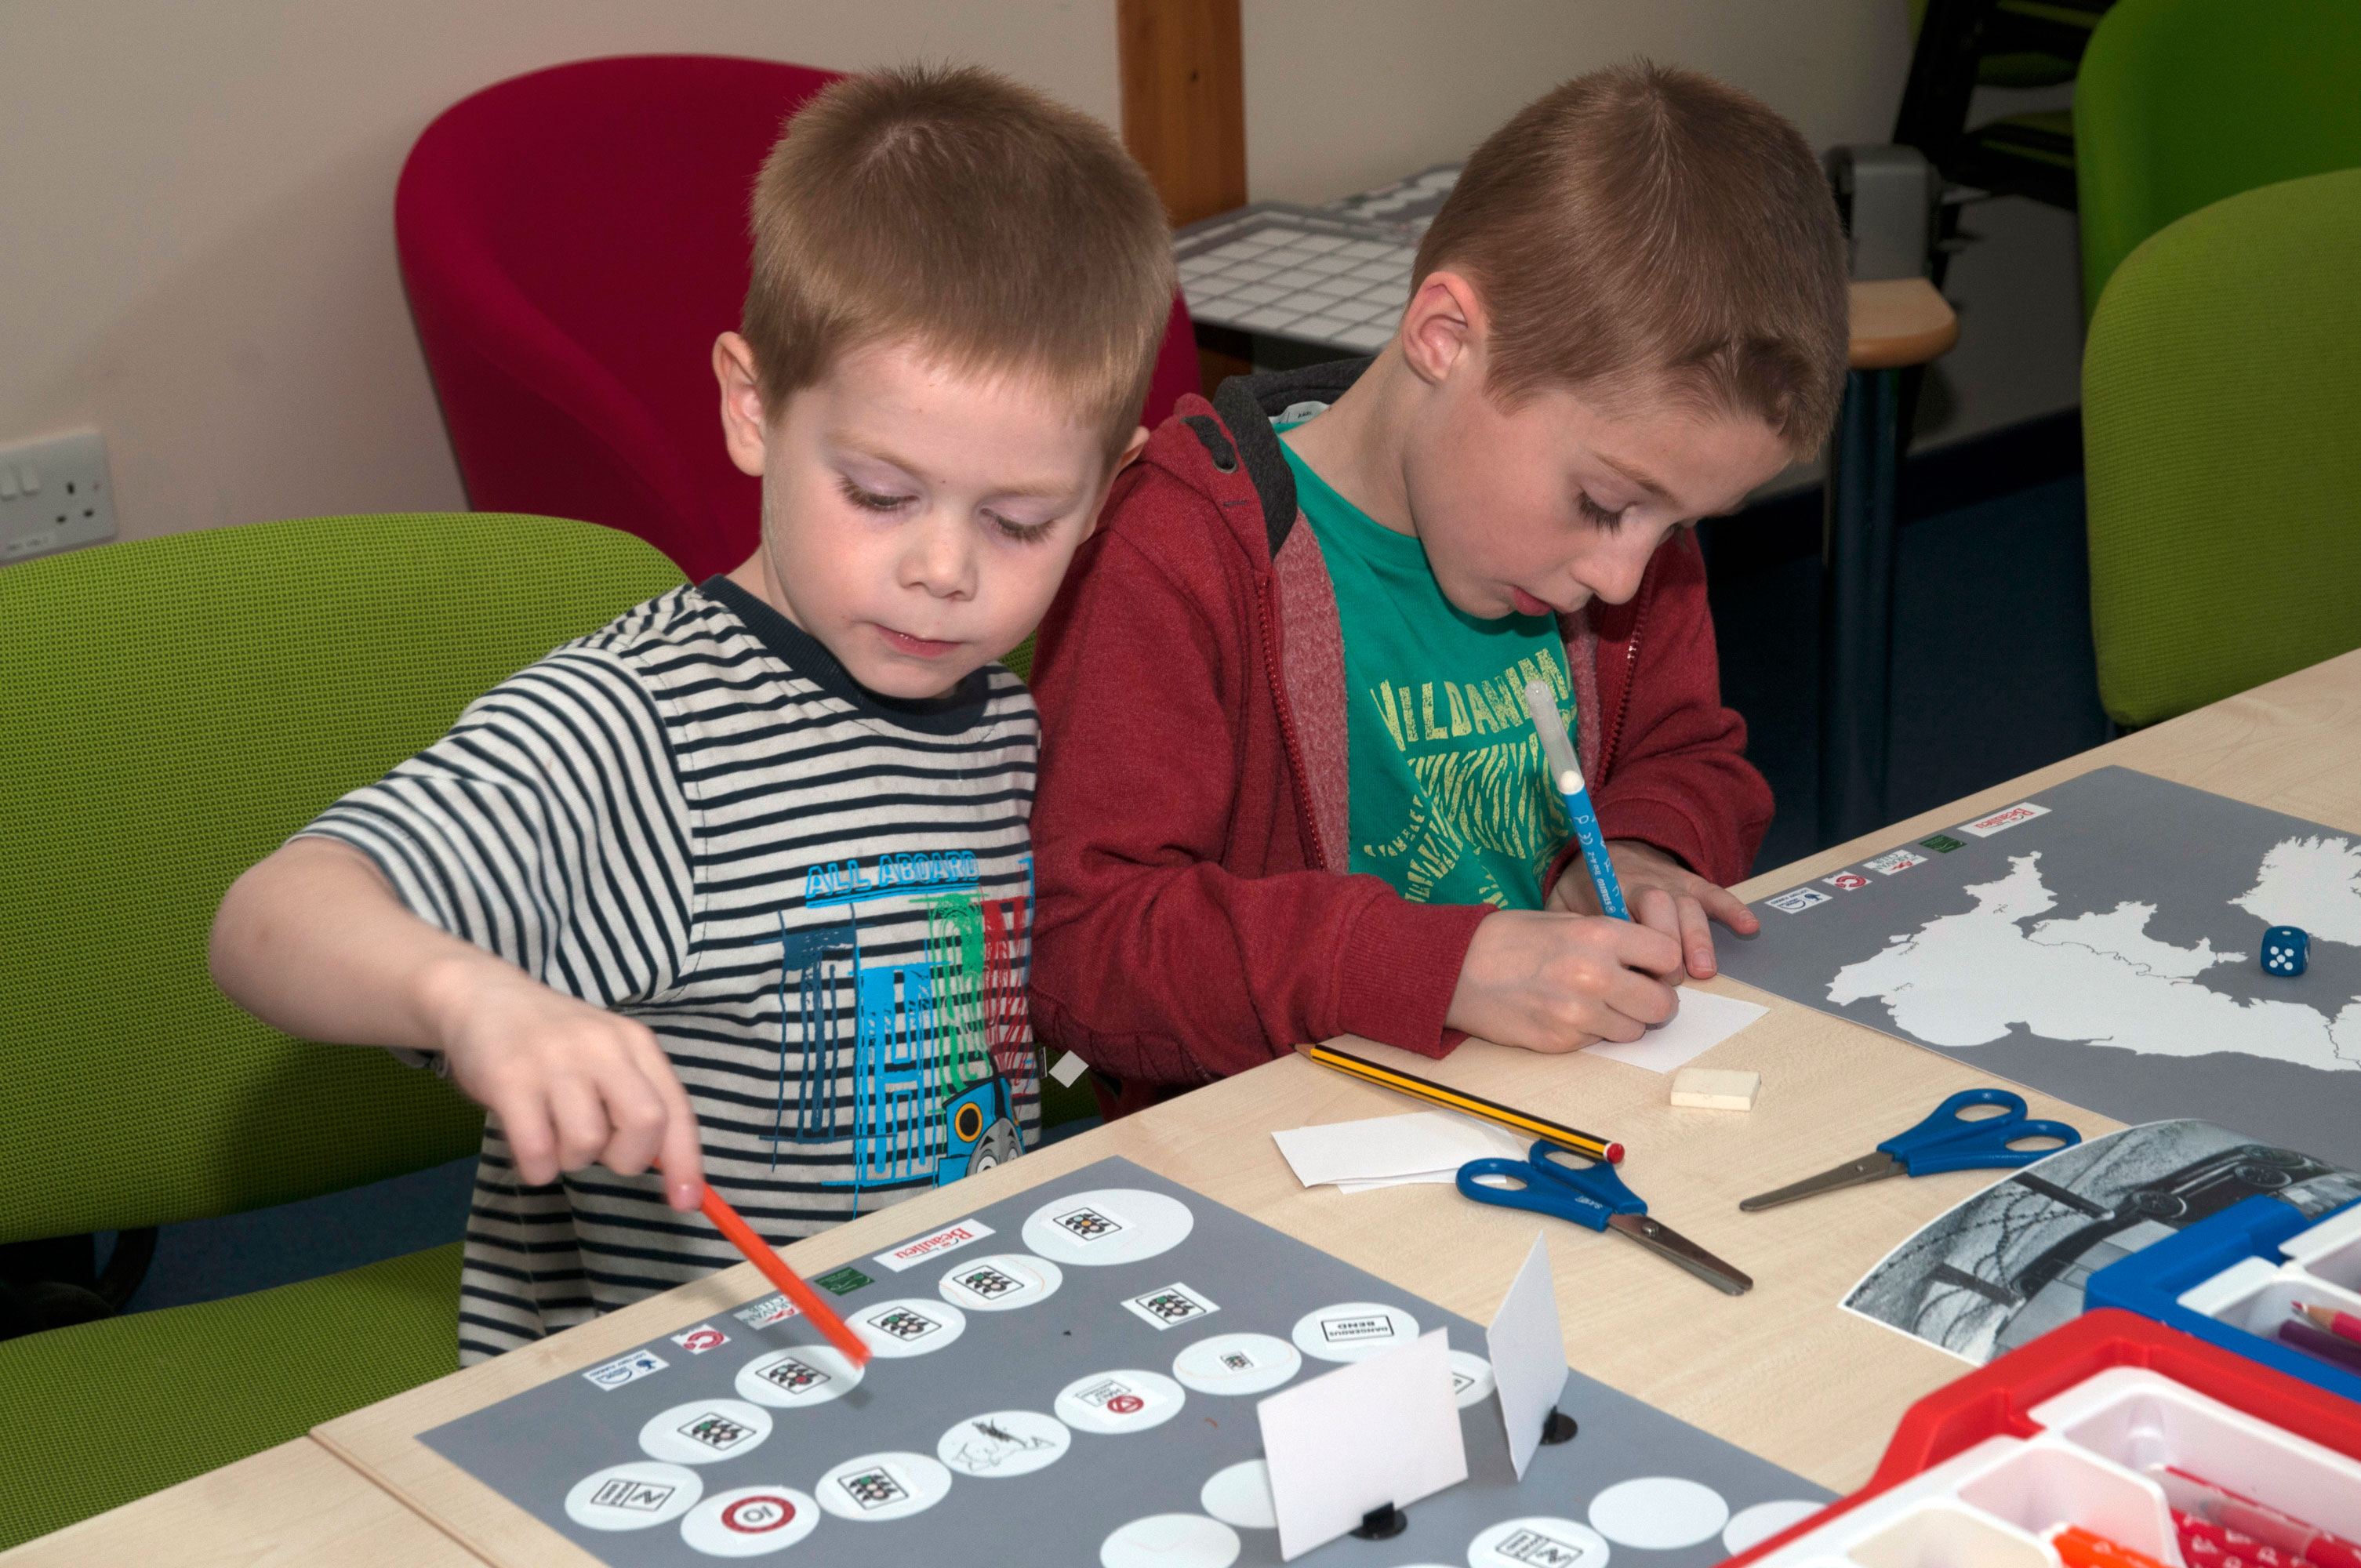 Two boys take part in a creative fun workshop